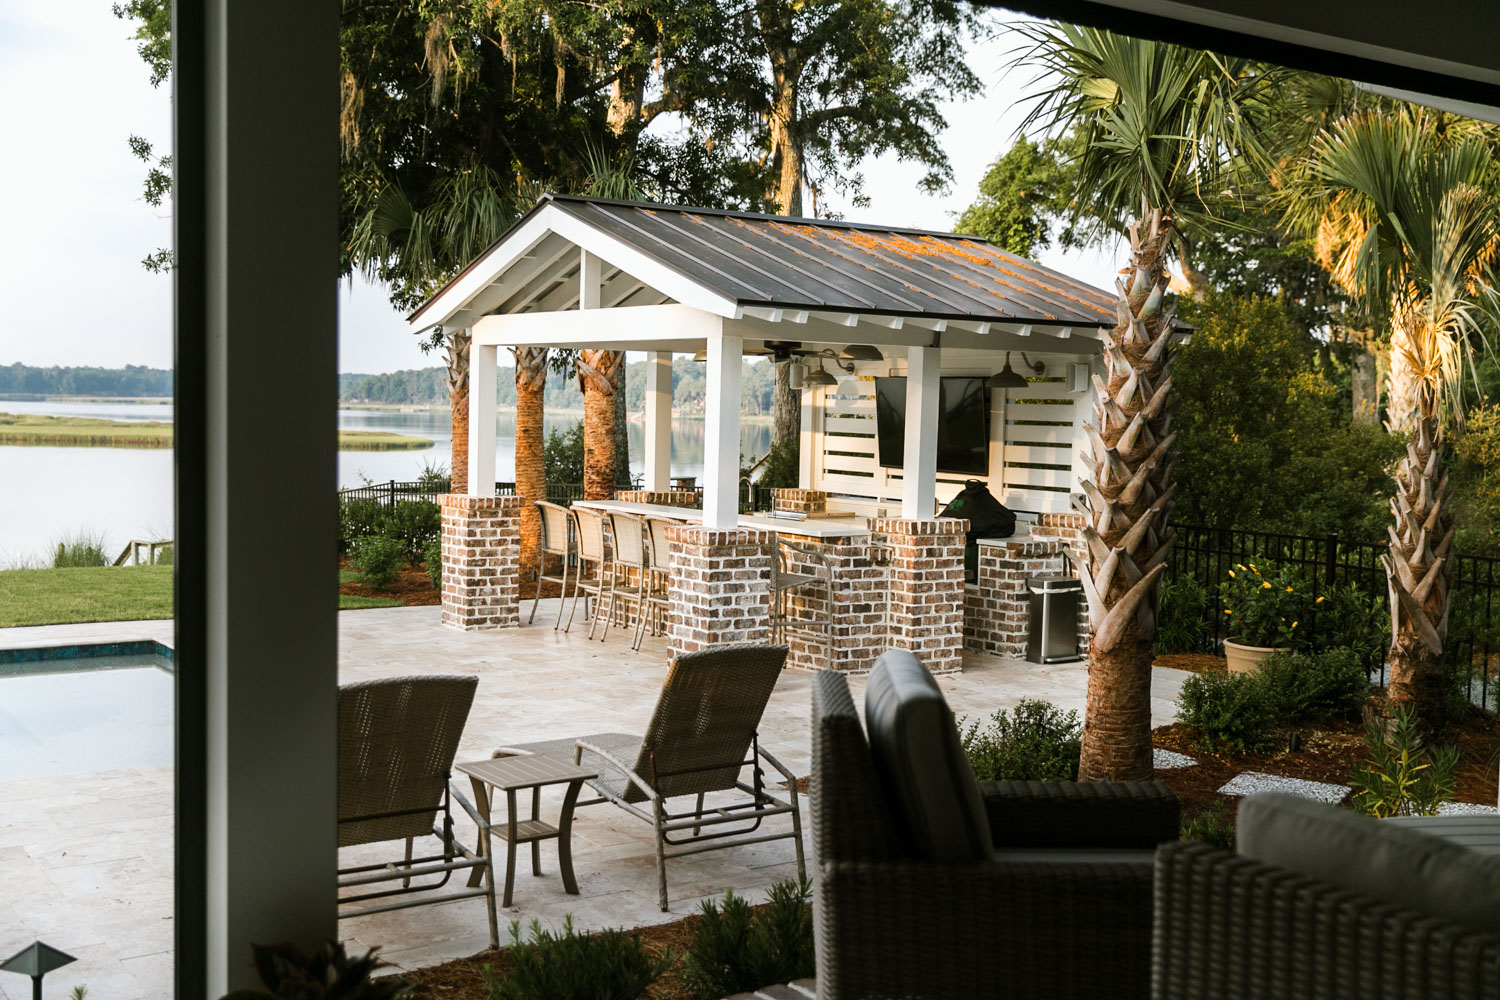 From the pool to the cabana, - …to the porch, each area is perfect for entertaining a large group or to just unwind after a long, hot day. There are many little spaces to sip some wine, watch the sunset and catch up with friends.